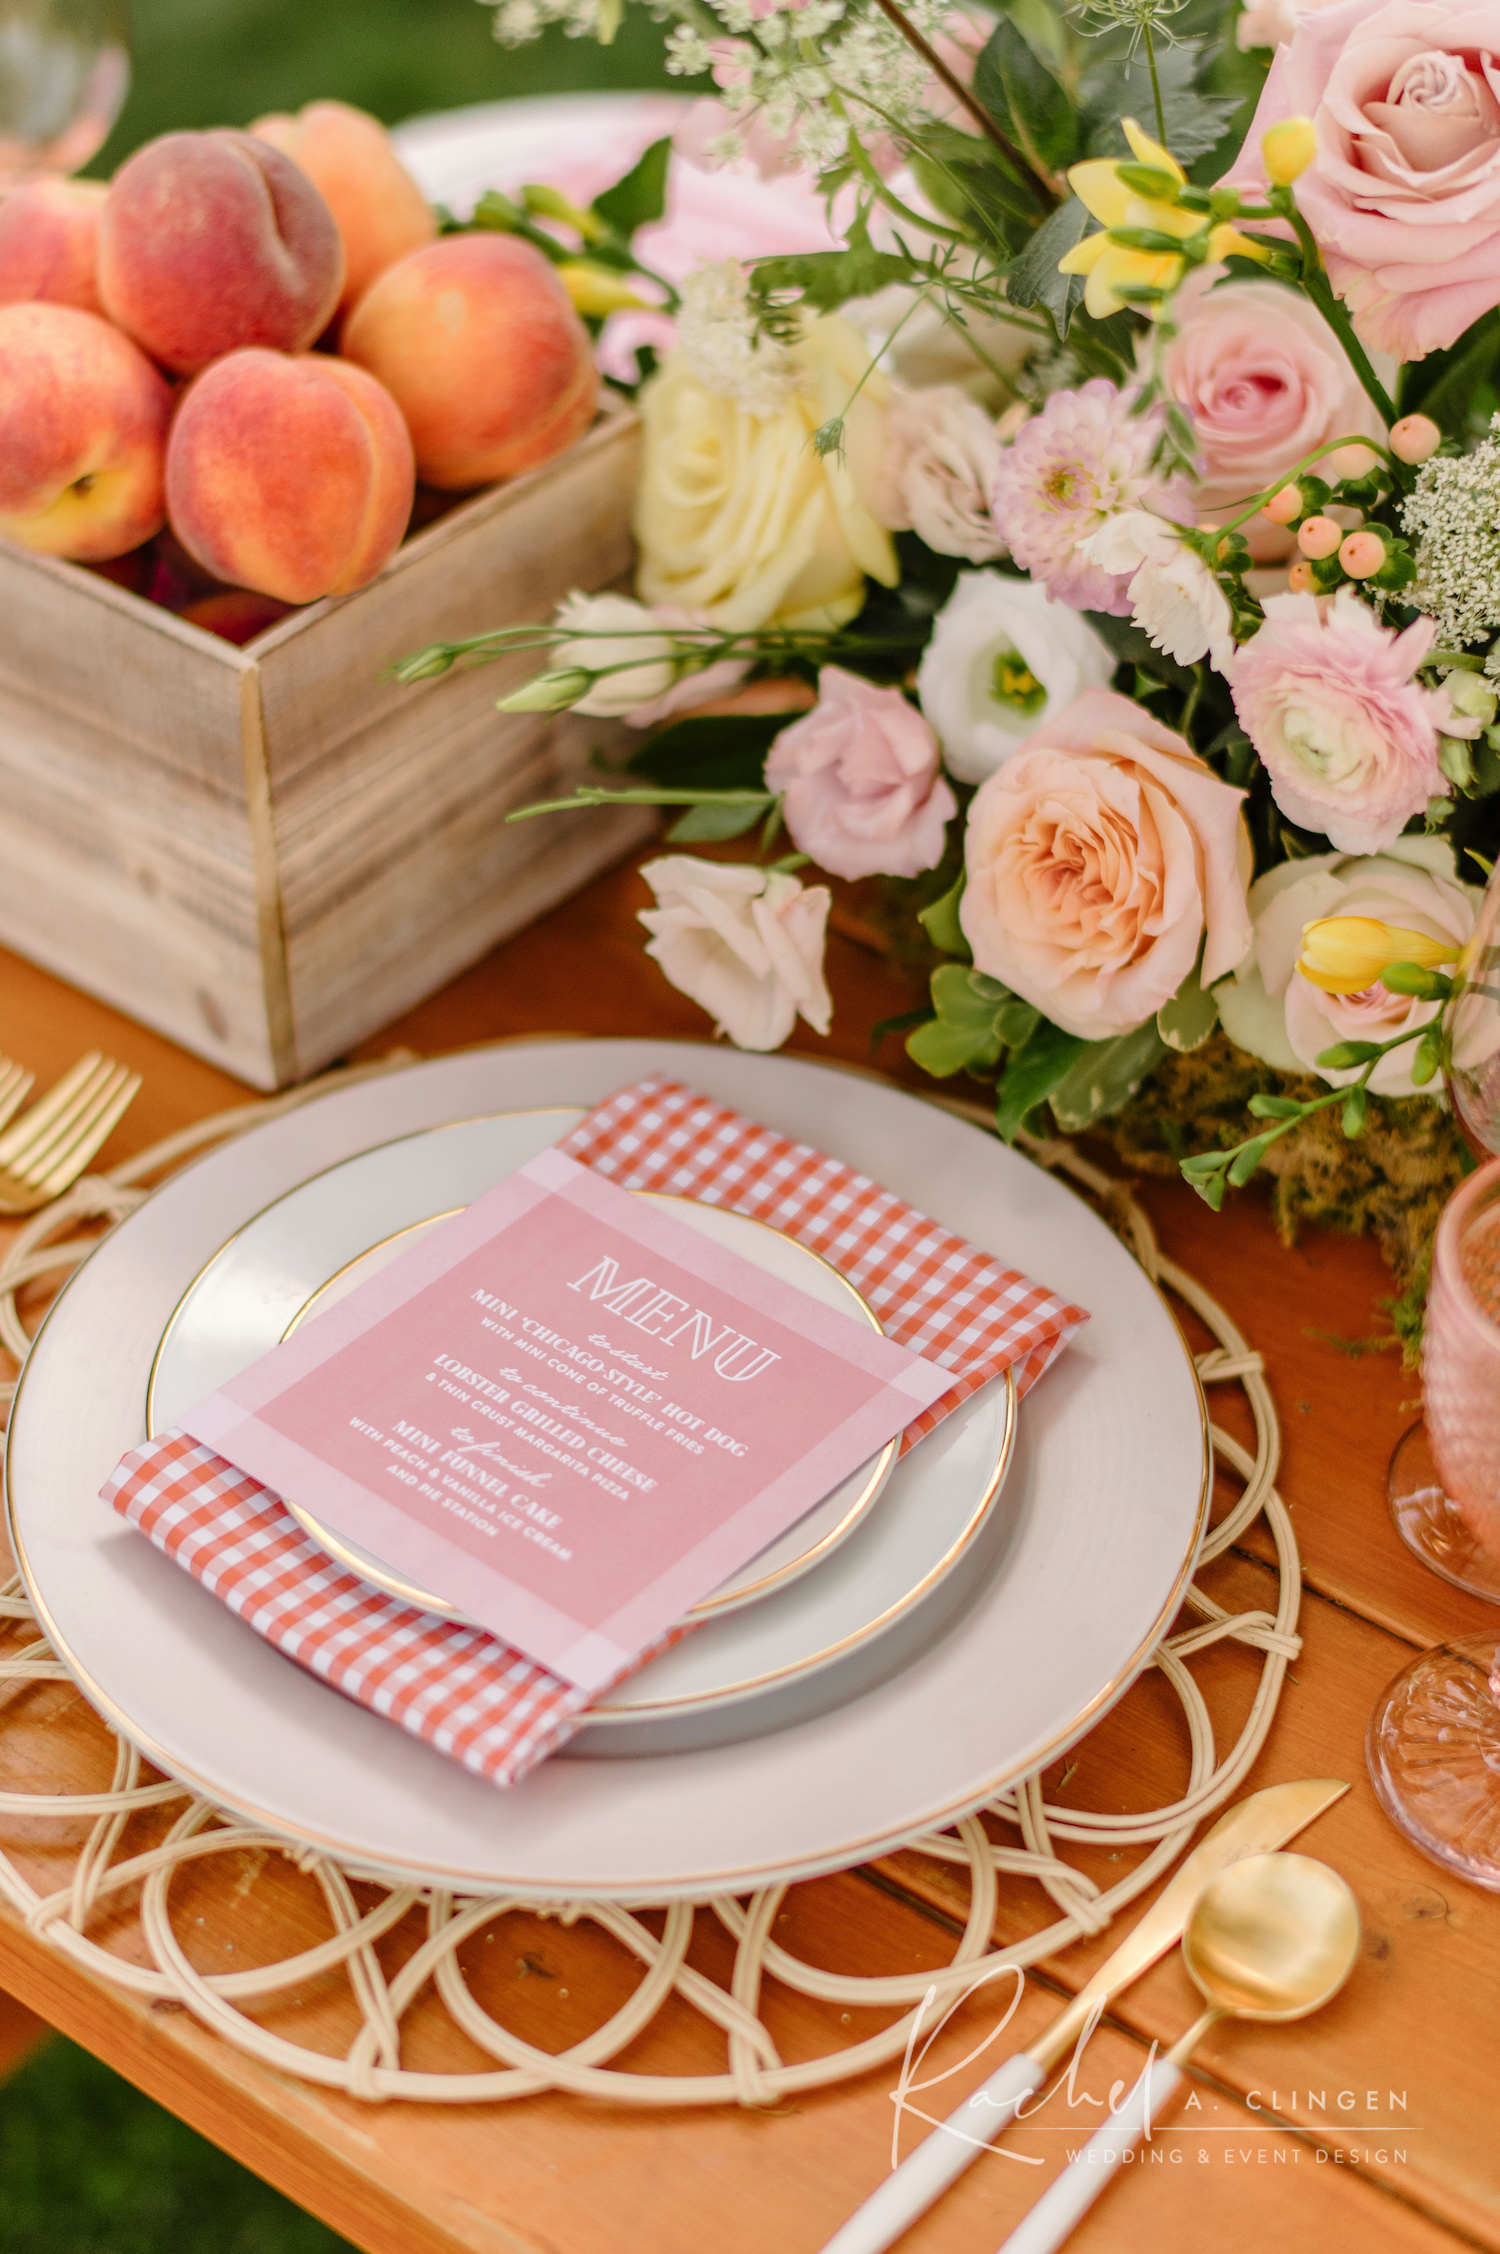 birthday party picnic placesettings